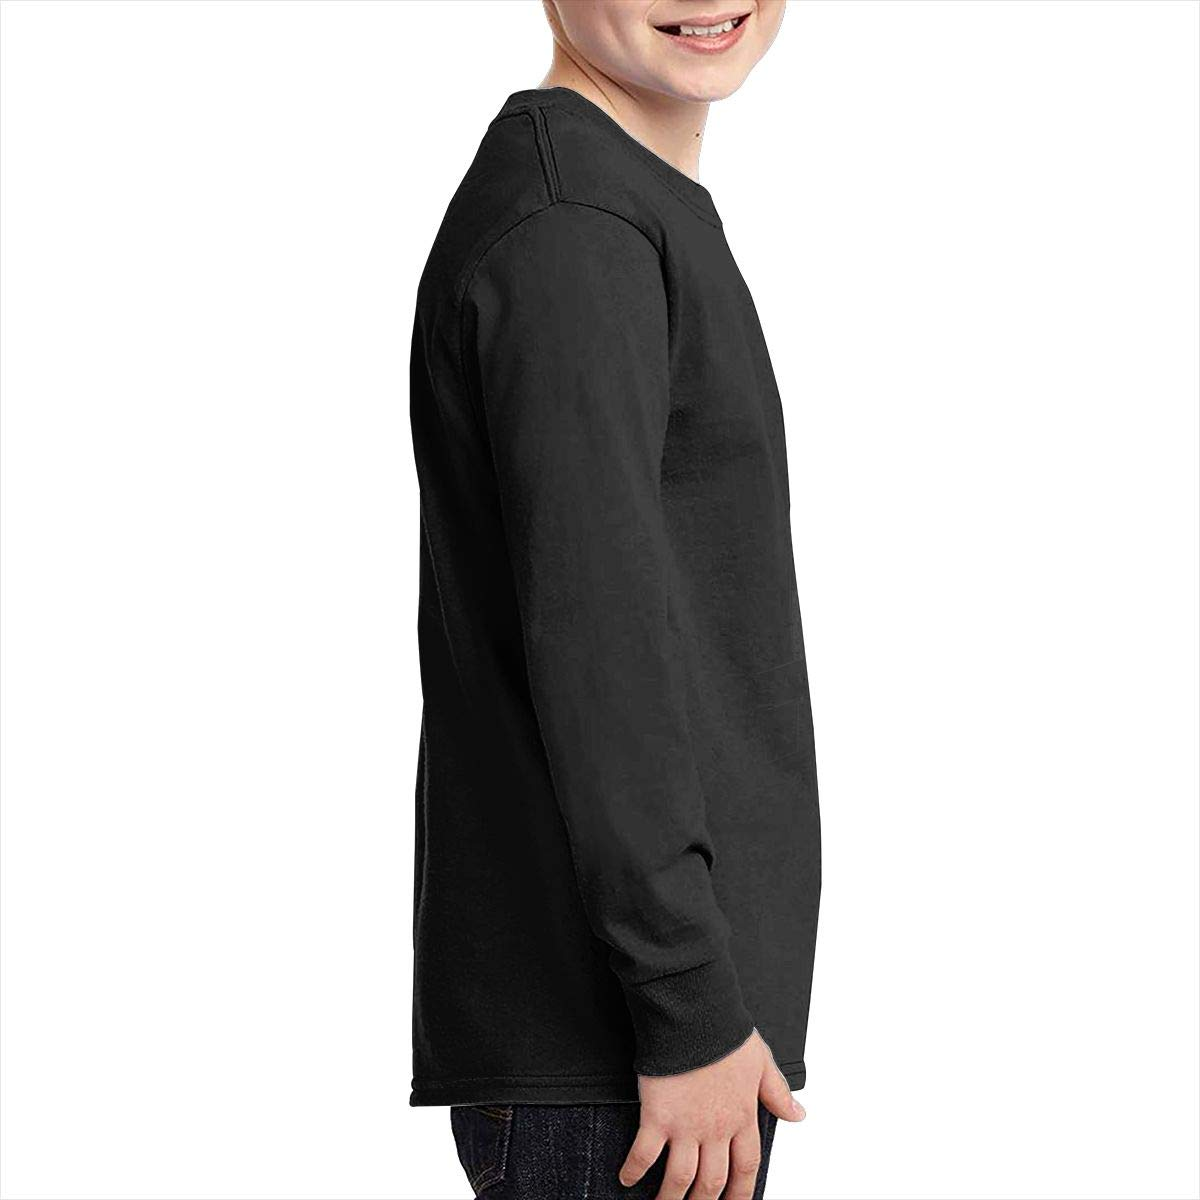 Youth The Smiths Hatful-of-Hollow Long Sleeves Shirt Boys Girls